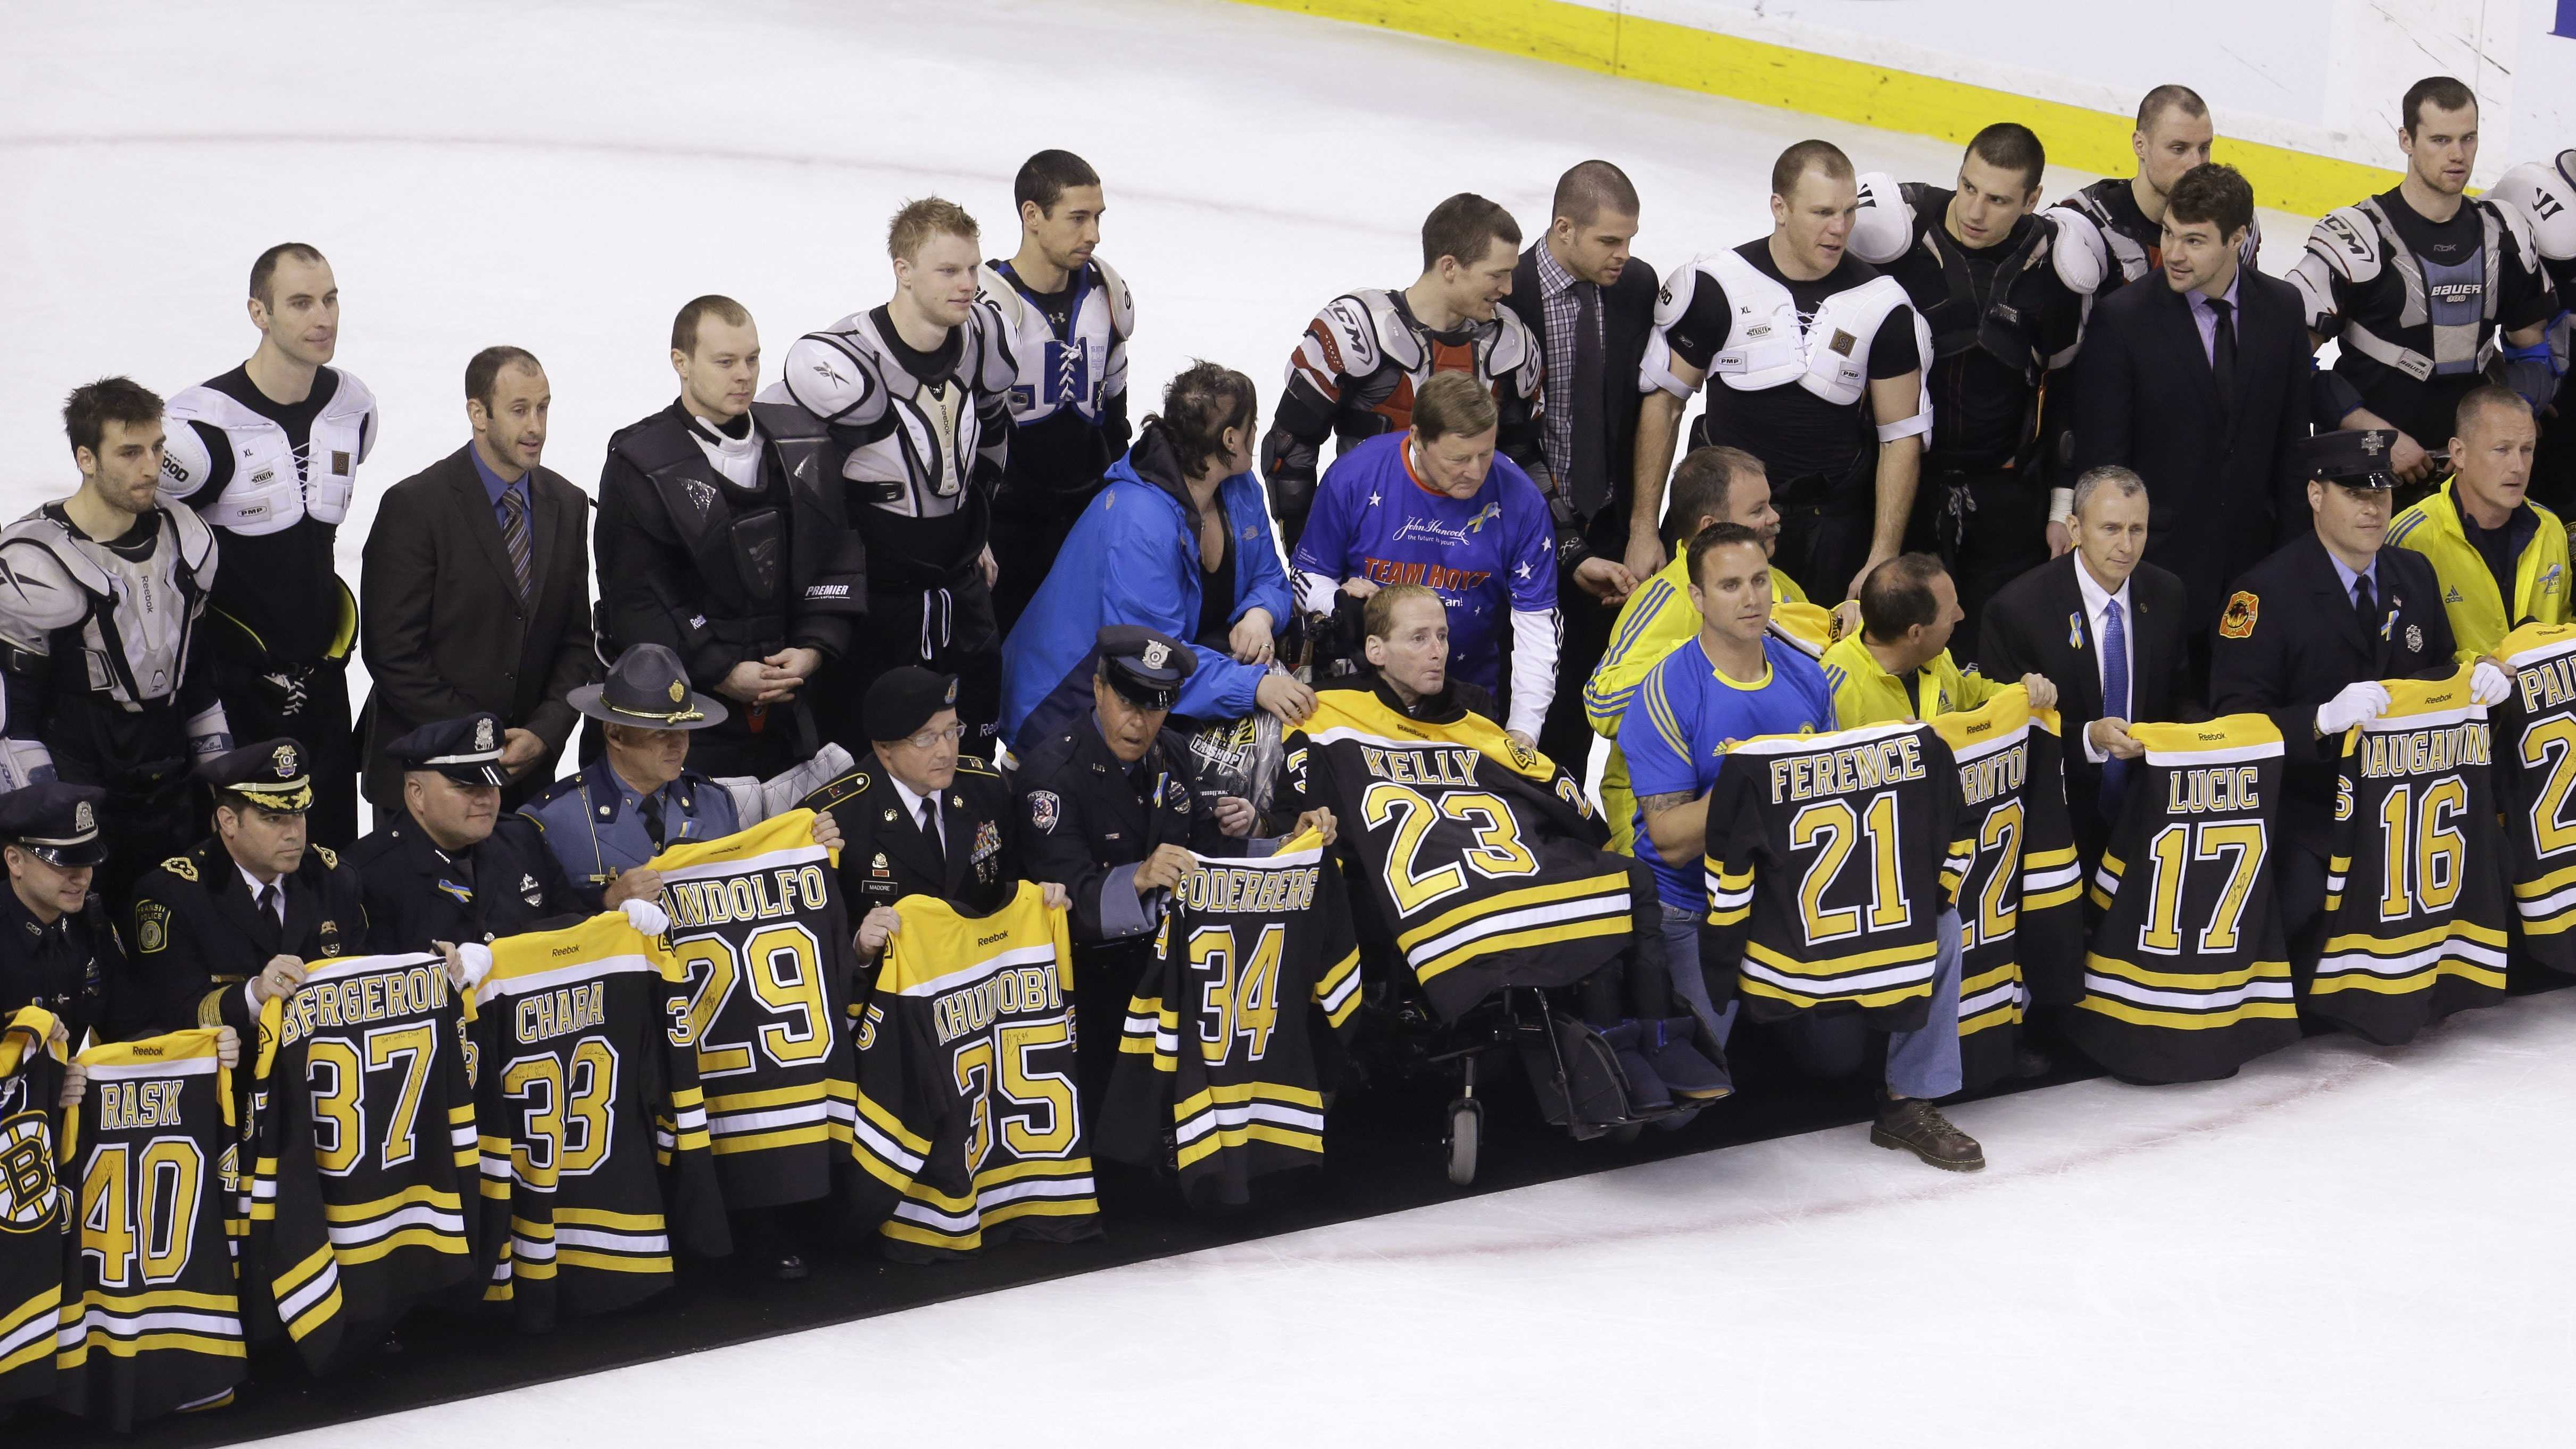 First responders, members of law enforcement and Boston Marathon officials hold Boston Bruins jerseys as they gather with members of the team, back, on the ice following an NHL hockey game against the Florida Panthers at the TD Garden in Boston, Sunday, April 21, 2013.